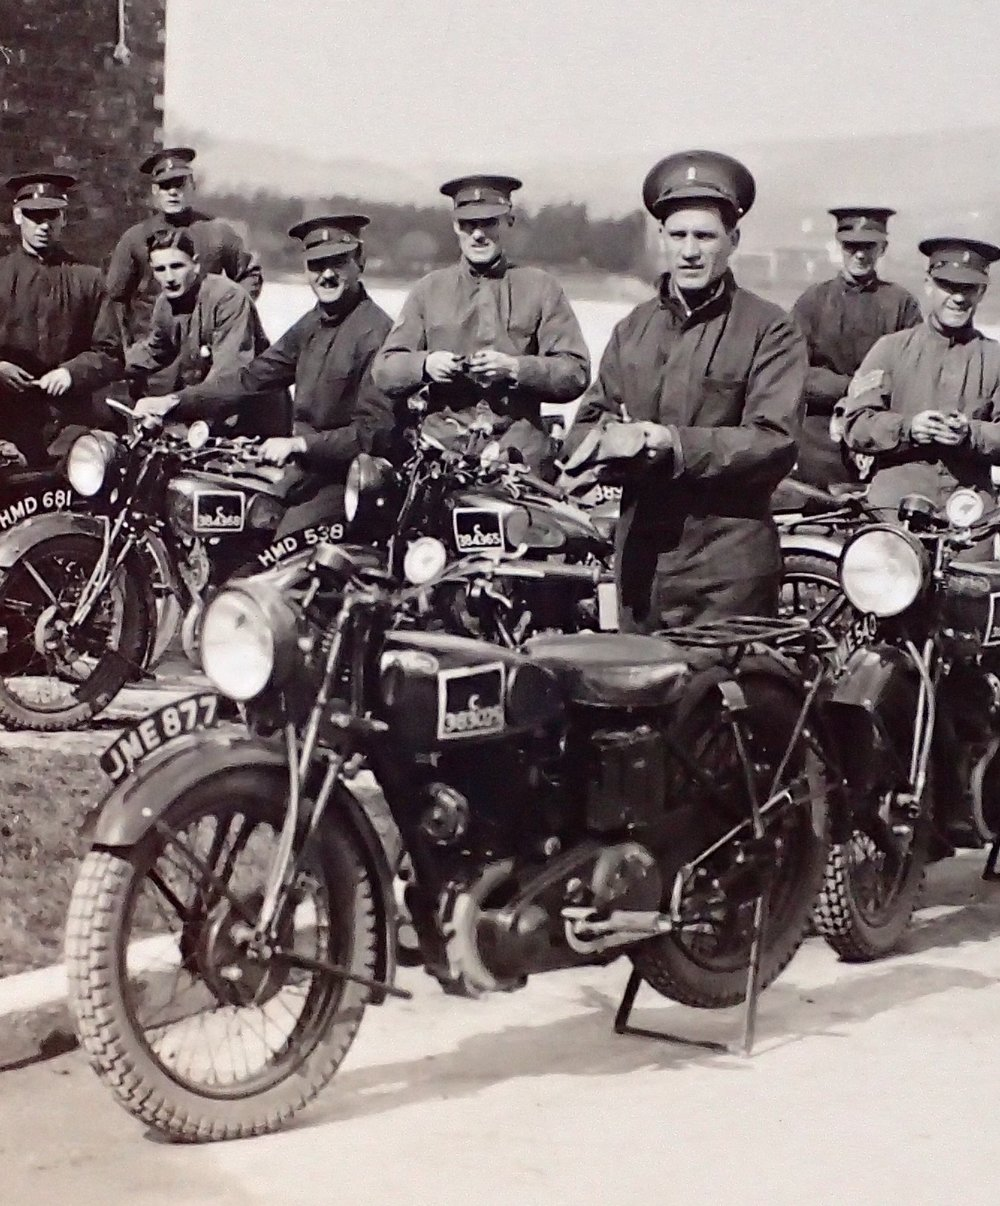 """The band was to form the Regimental motor-cyclist troop. But, when nineteen new motor-cycles arrived, there were no instructors available. Each bandsman, therefore, was told that he was to be given a motorcycle as a birthday present. The official handbooks and instructions were issued and dates laid down on which tests and inspections would be carried out. The bandsmen were instructed to find for themselves ways and means of learning to ride and maintain their motor-cycles."" Miller, Major-General Charles H., History of the 13th/18th Hussars (Queen Mary's Own) 1922-1947. Chisman Bradsaw Ltd, London 1949  -  James Albert George Nunn (Amelia's Grandfather), shown fifth from left"